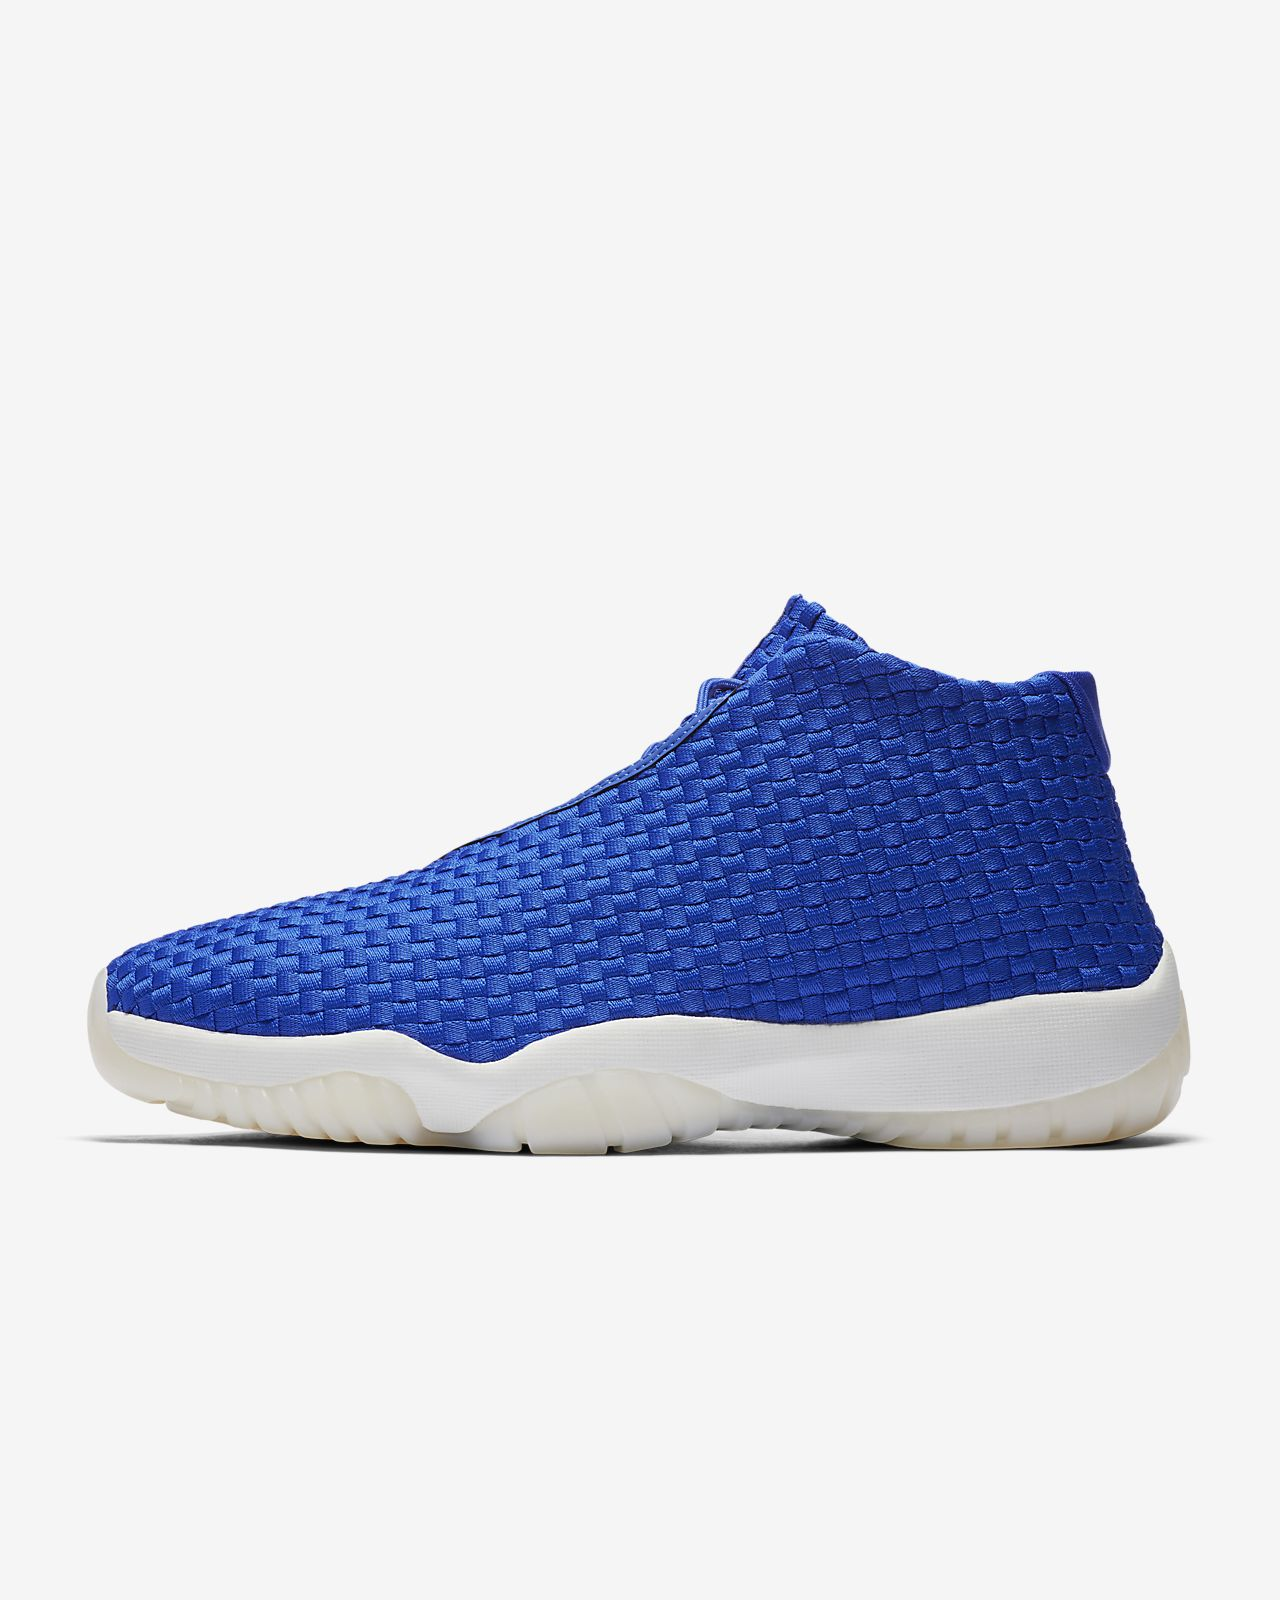 2de7e4a0341cd3 Air Jordan Future Men s Shoe. Nike.com